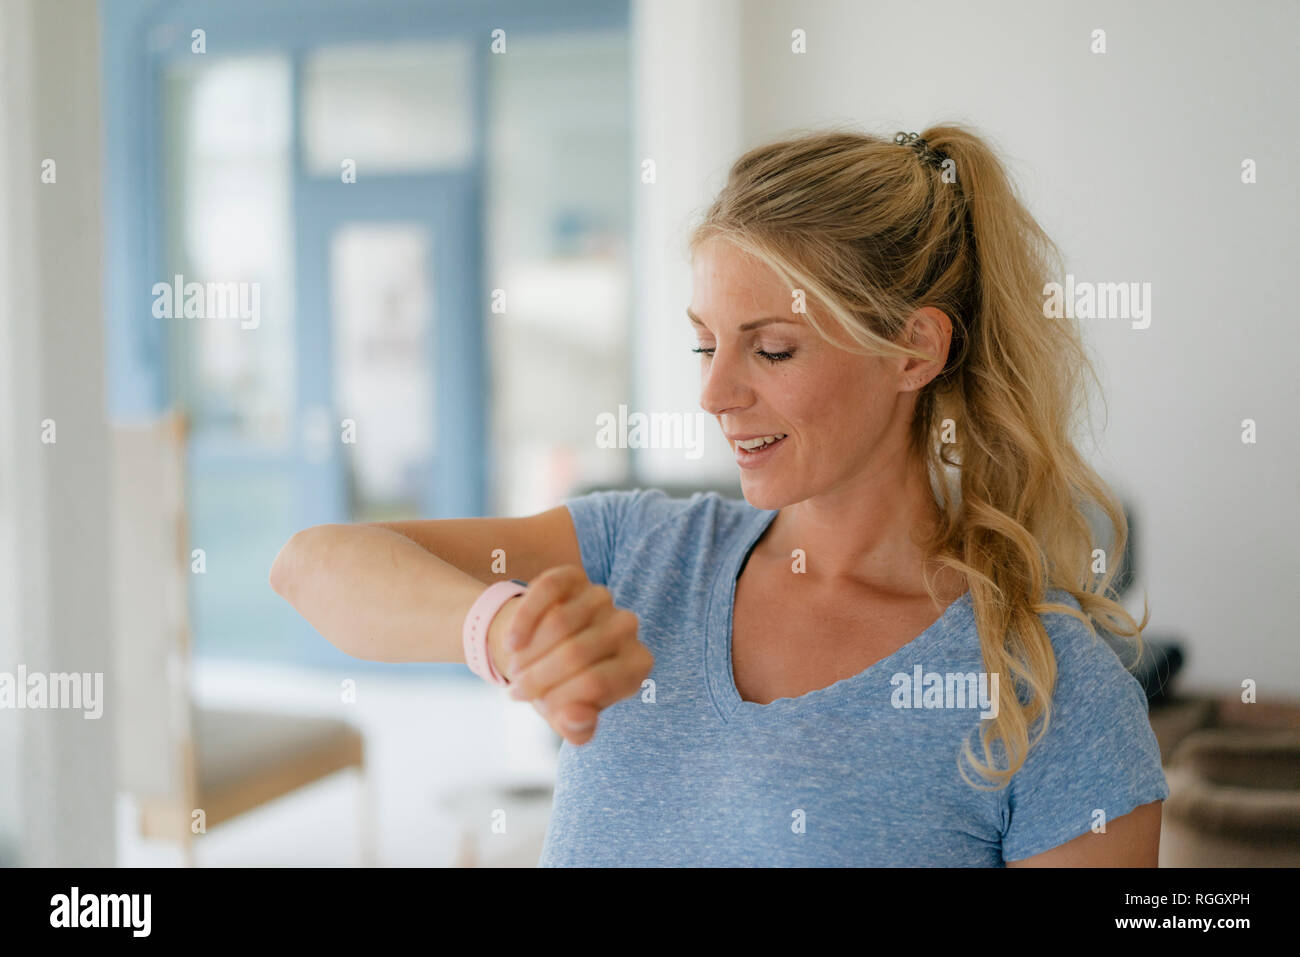 Smiling Blond Woman Checking The Time